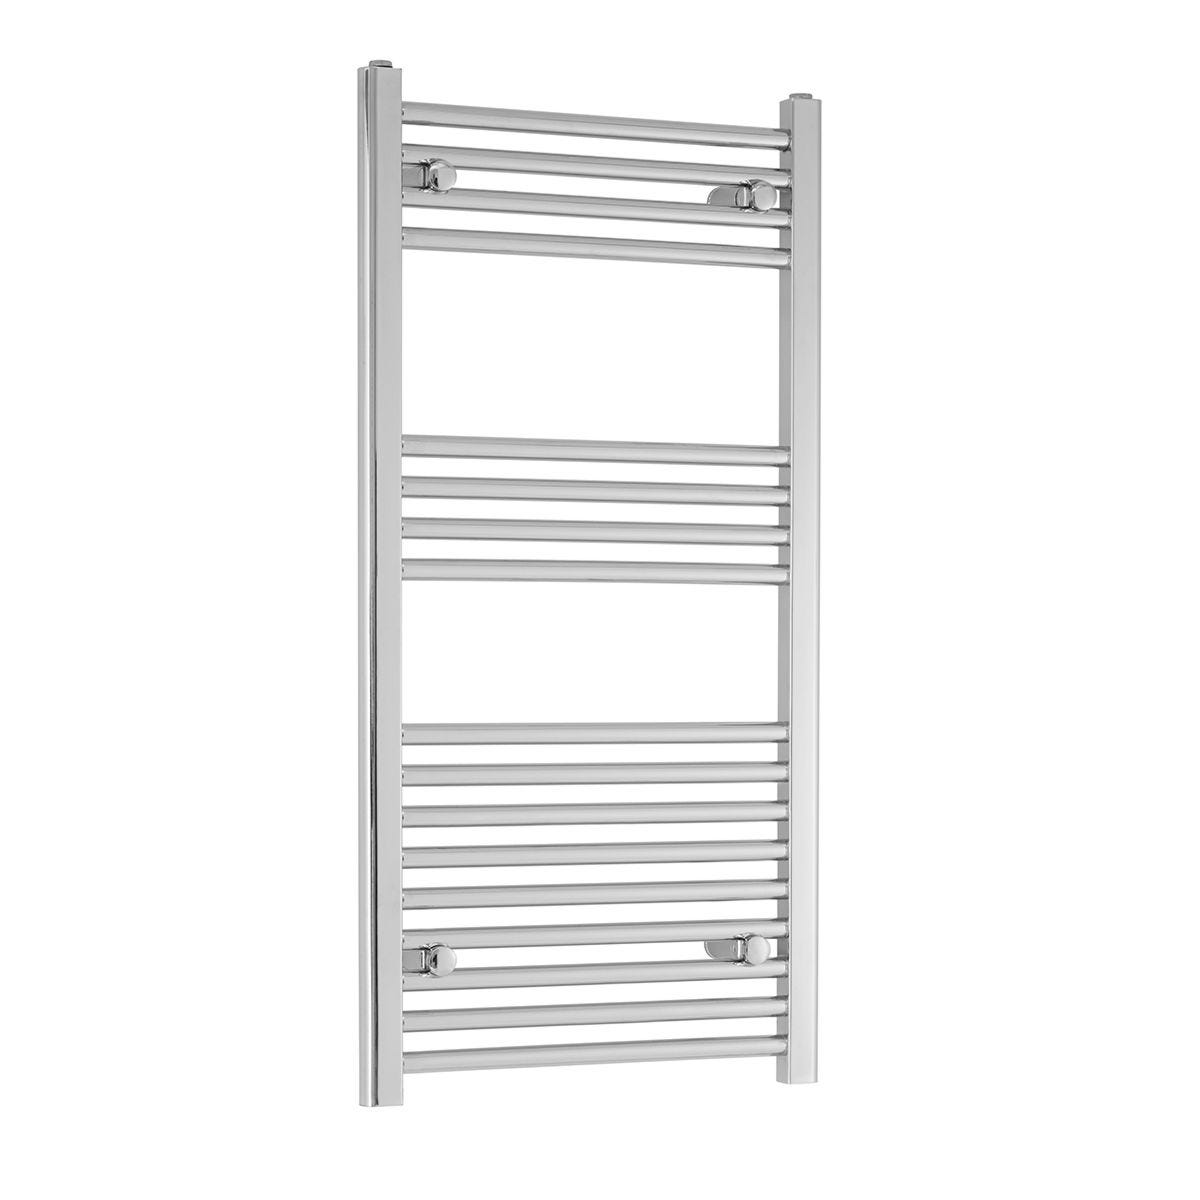 Heating Style Blythe Ladder Rail 1000x400mm Straight - Chrome